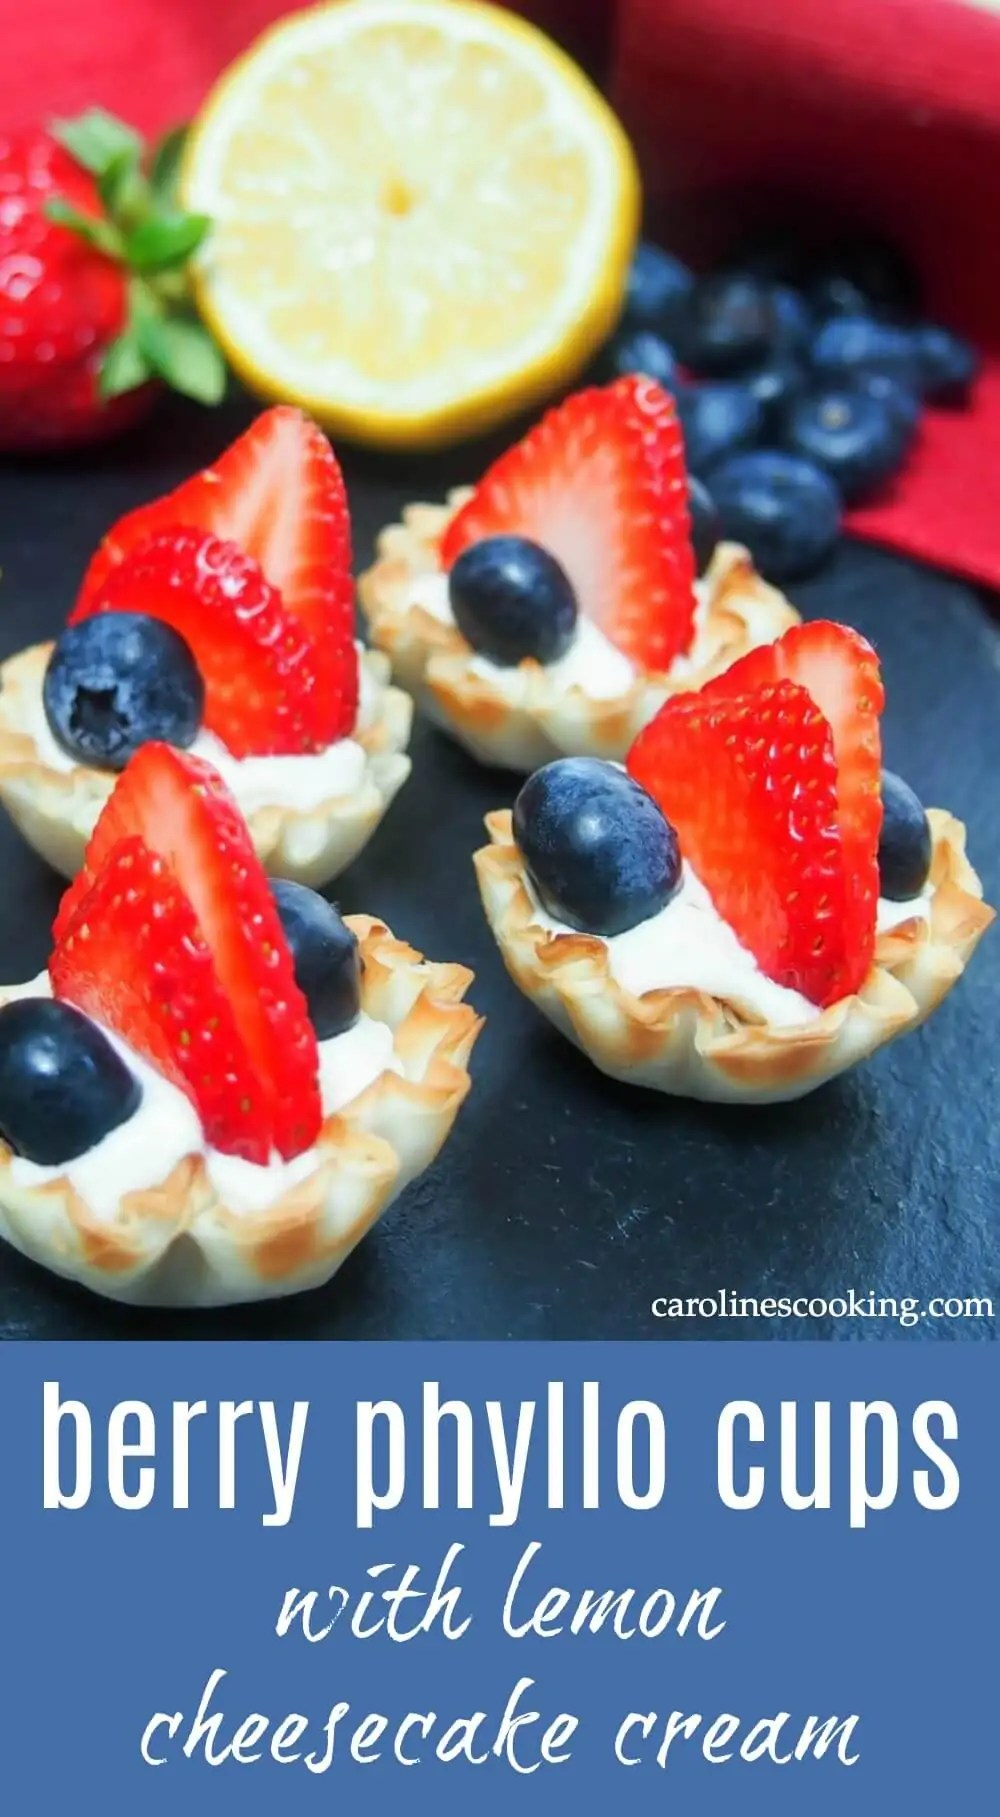 These berry phyllo cups with lemon cheesecake cream take only a few minutes to prepare but are an elegant & delicious mini dessert, perfect for entertaining. And red, white and blue too! #redwhiteandblue #easydessert #fingerfood